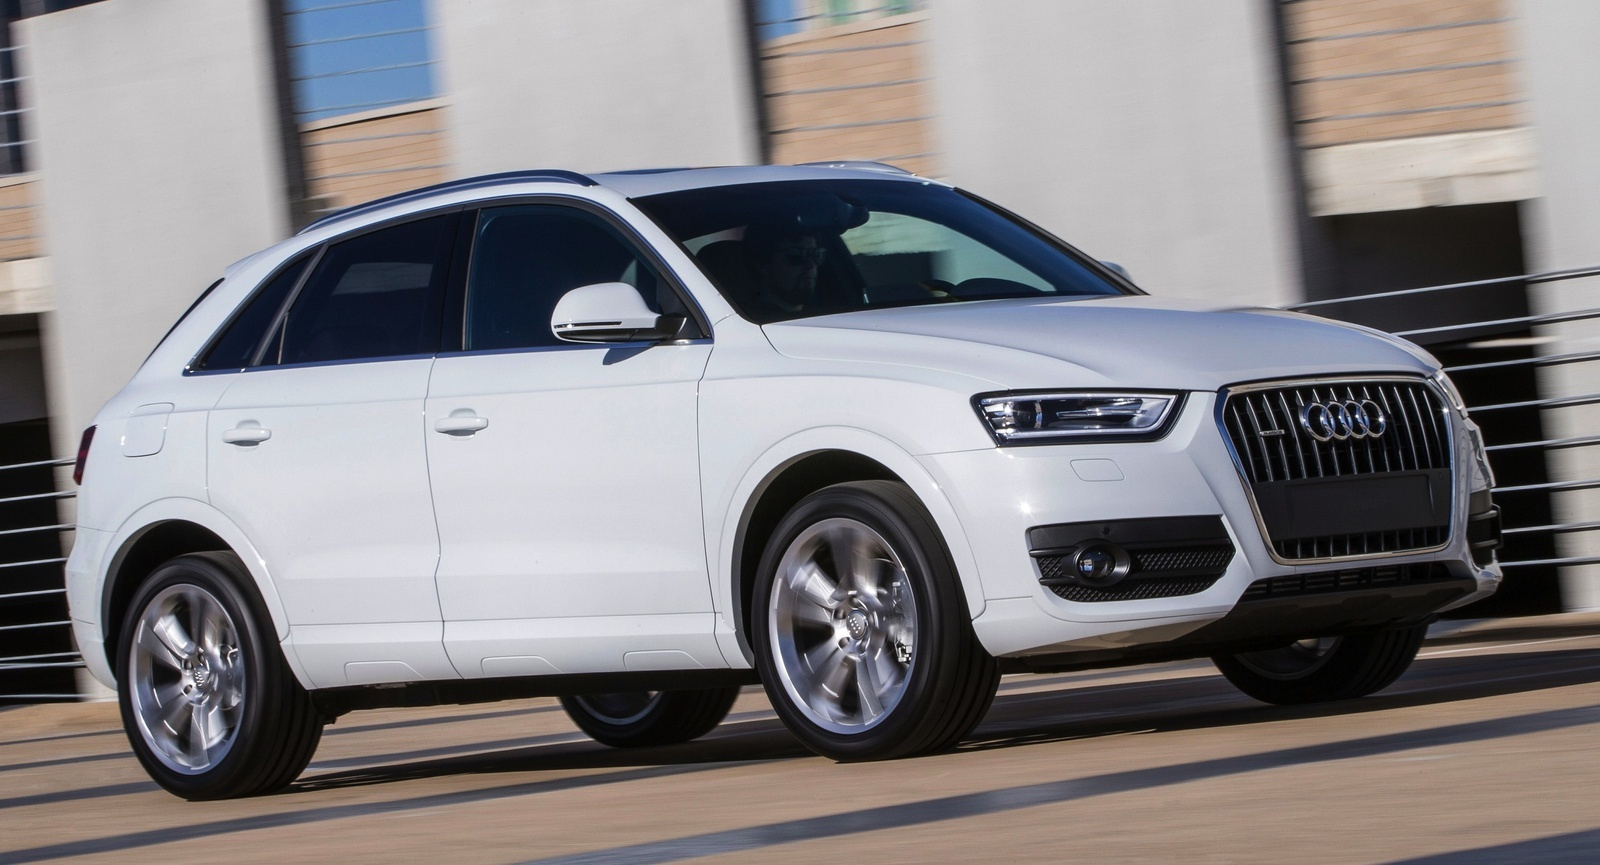 Audi q7 used car for sale 13